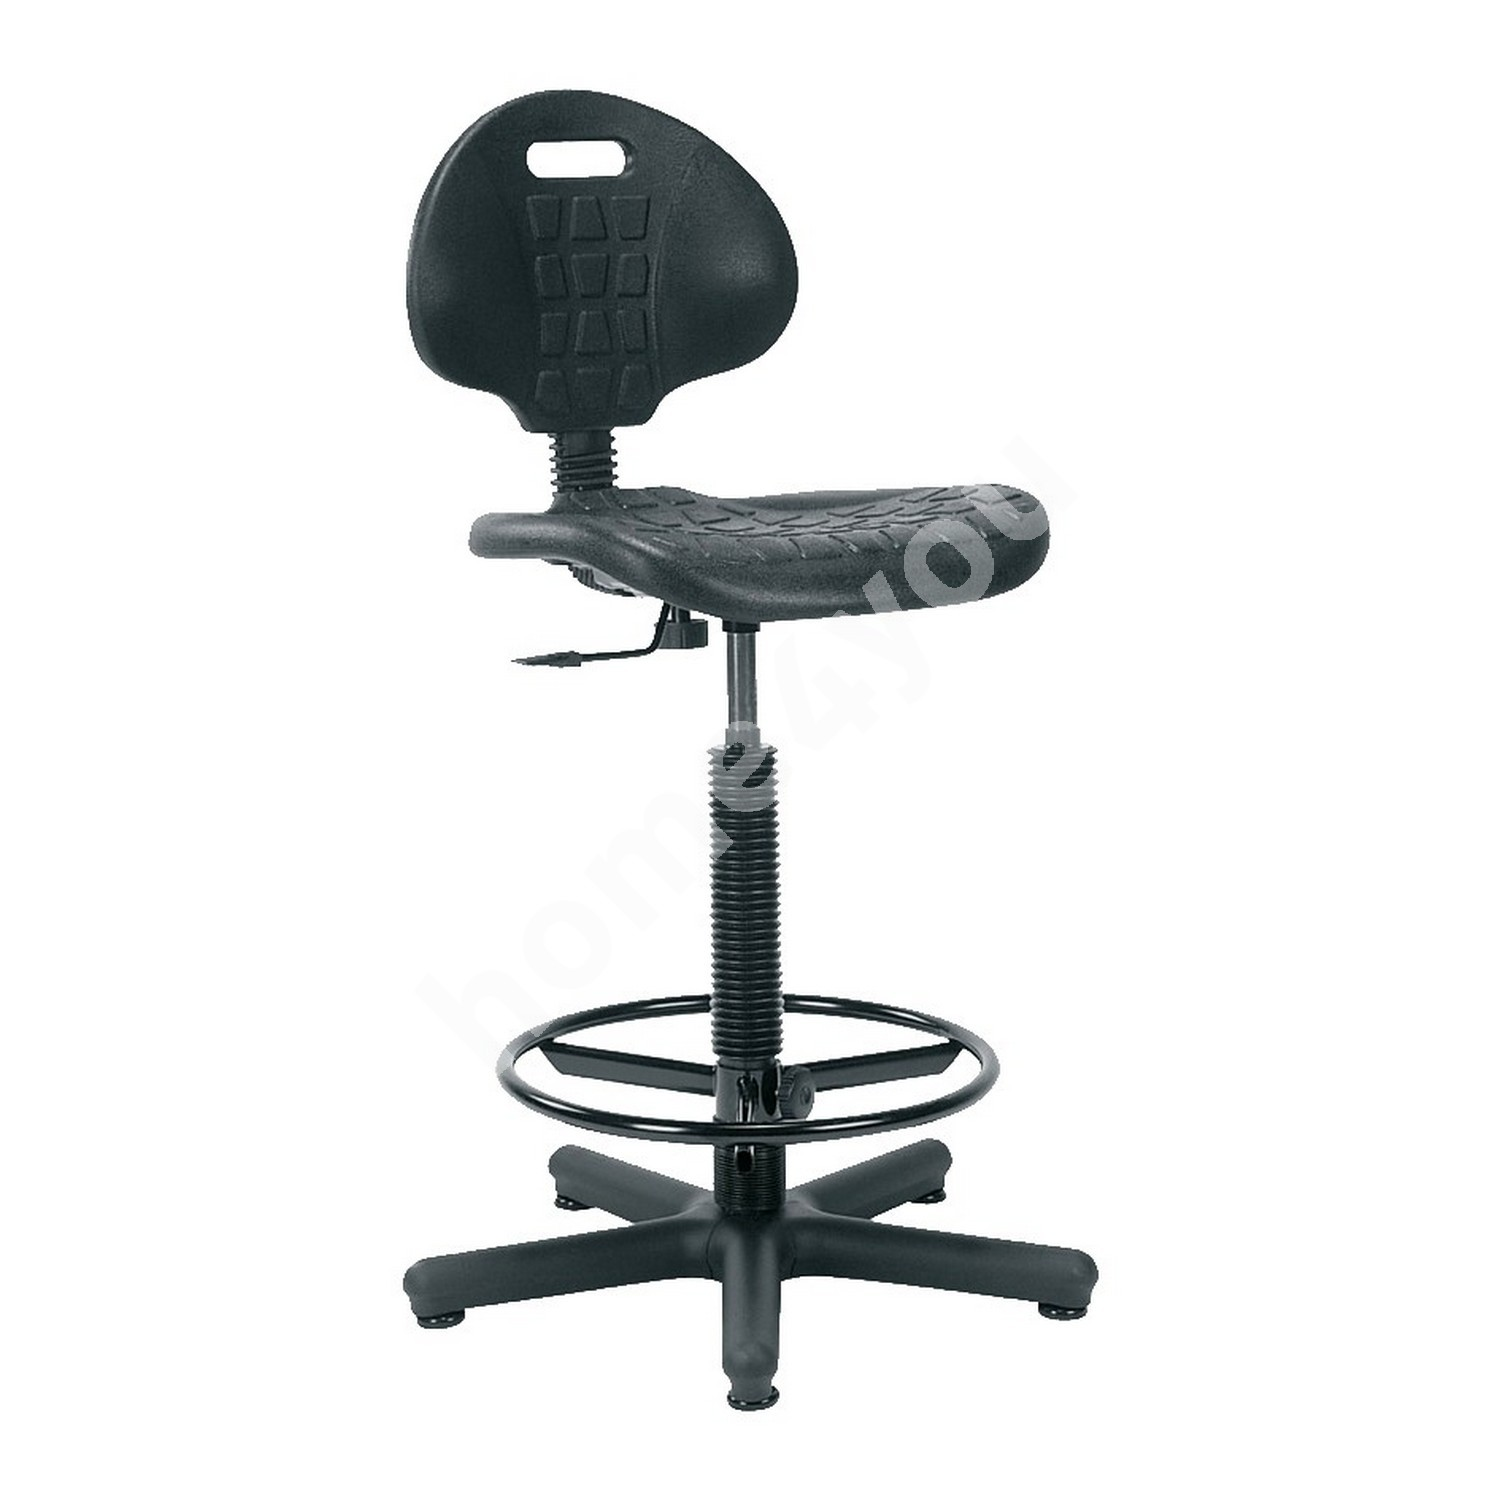 Task chair high NARGO 71x71xH89-120cm, seat and back rest: plastic, color: black